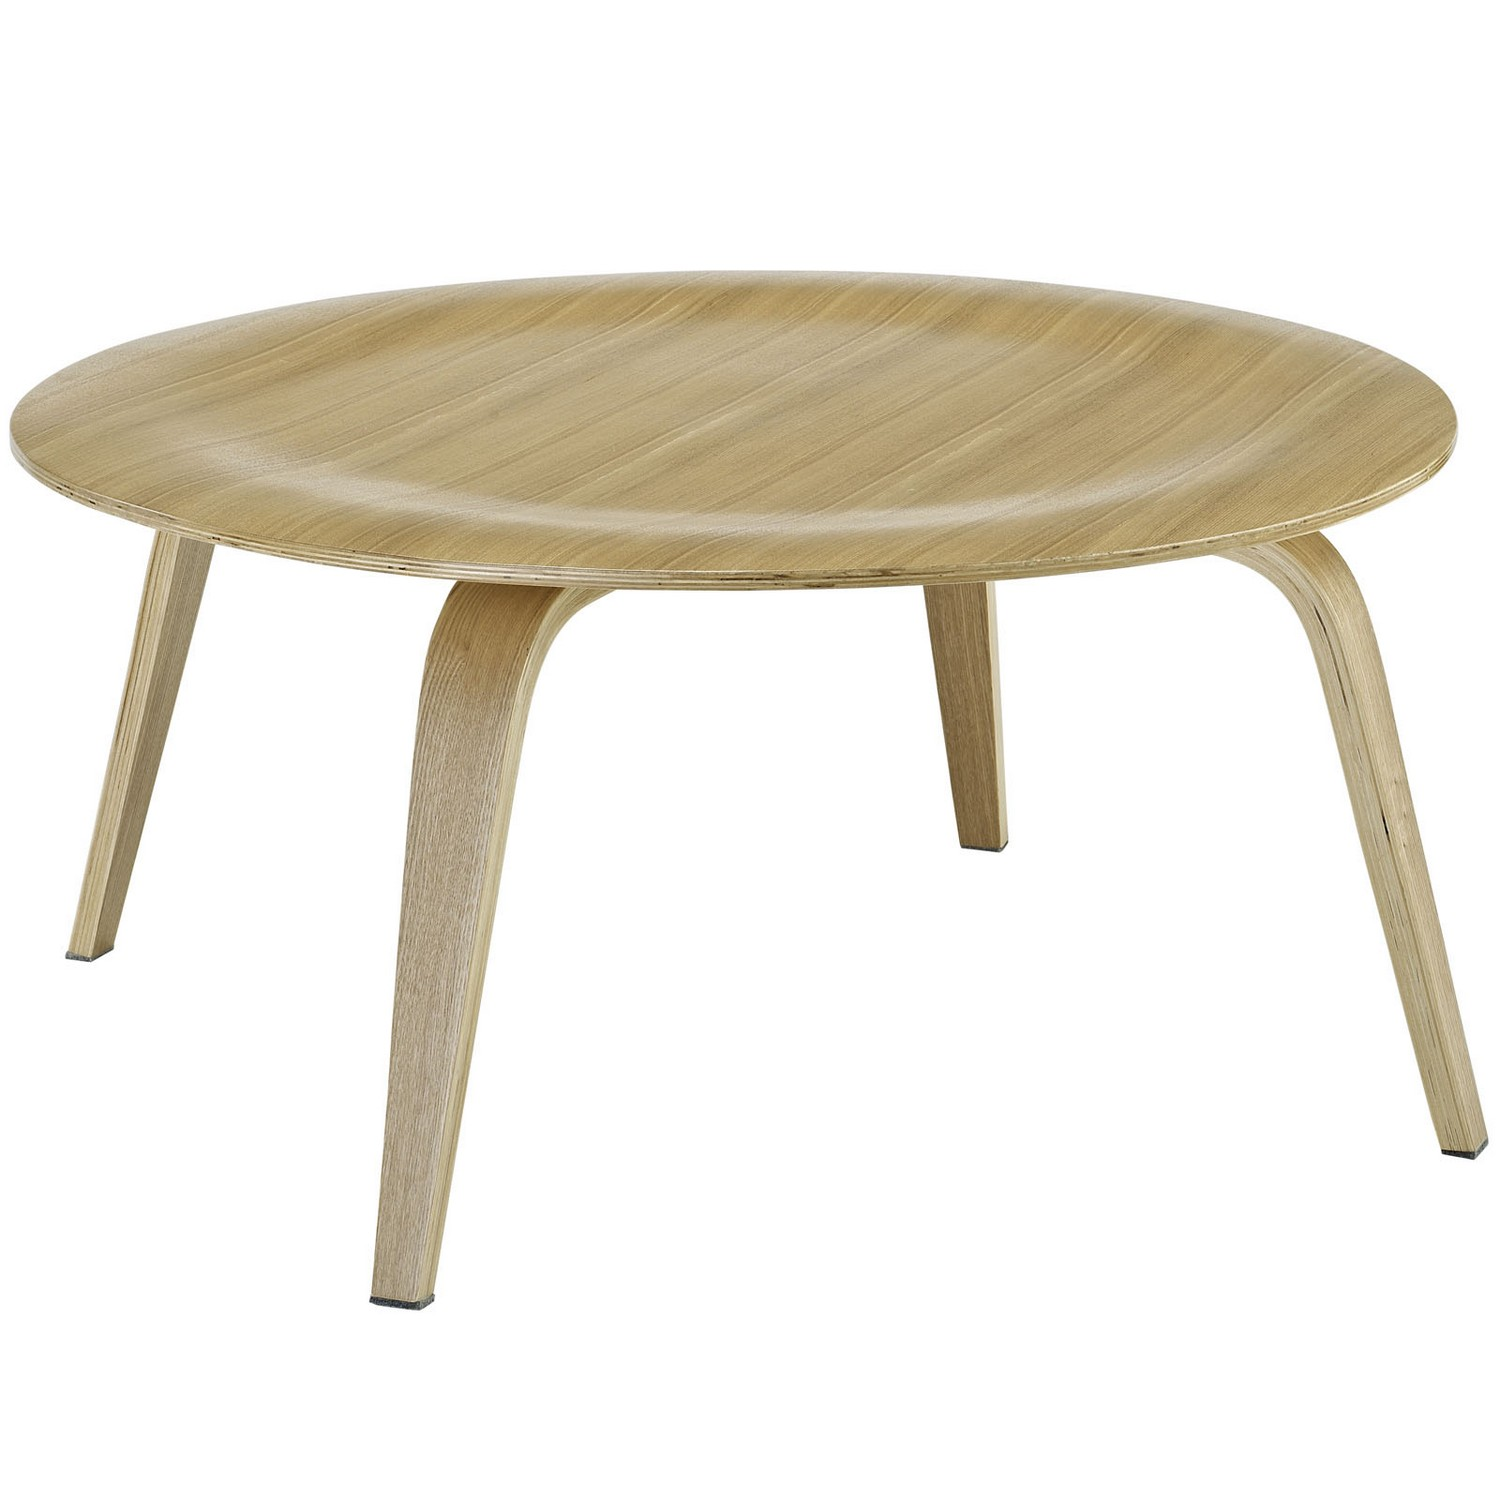 Modway Plywood Coffee Table - Natural